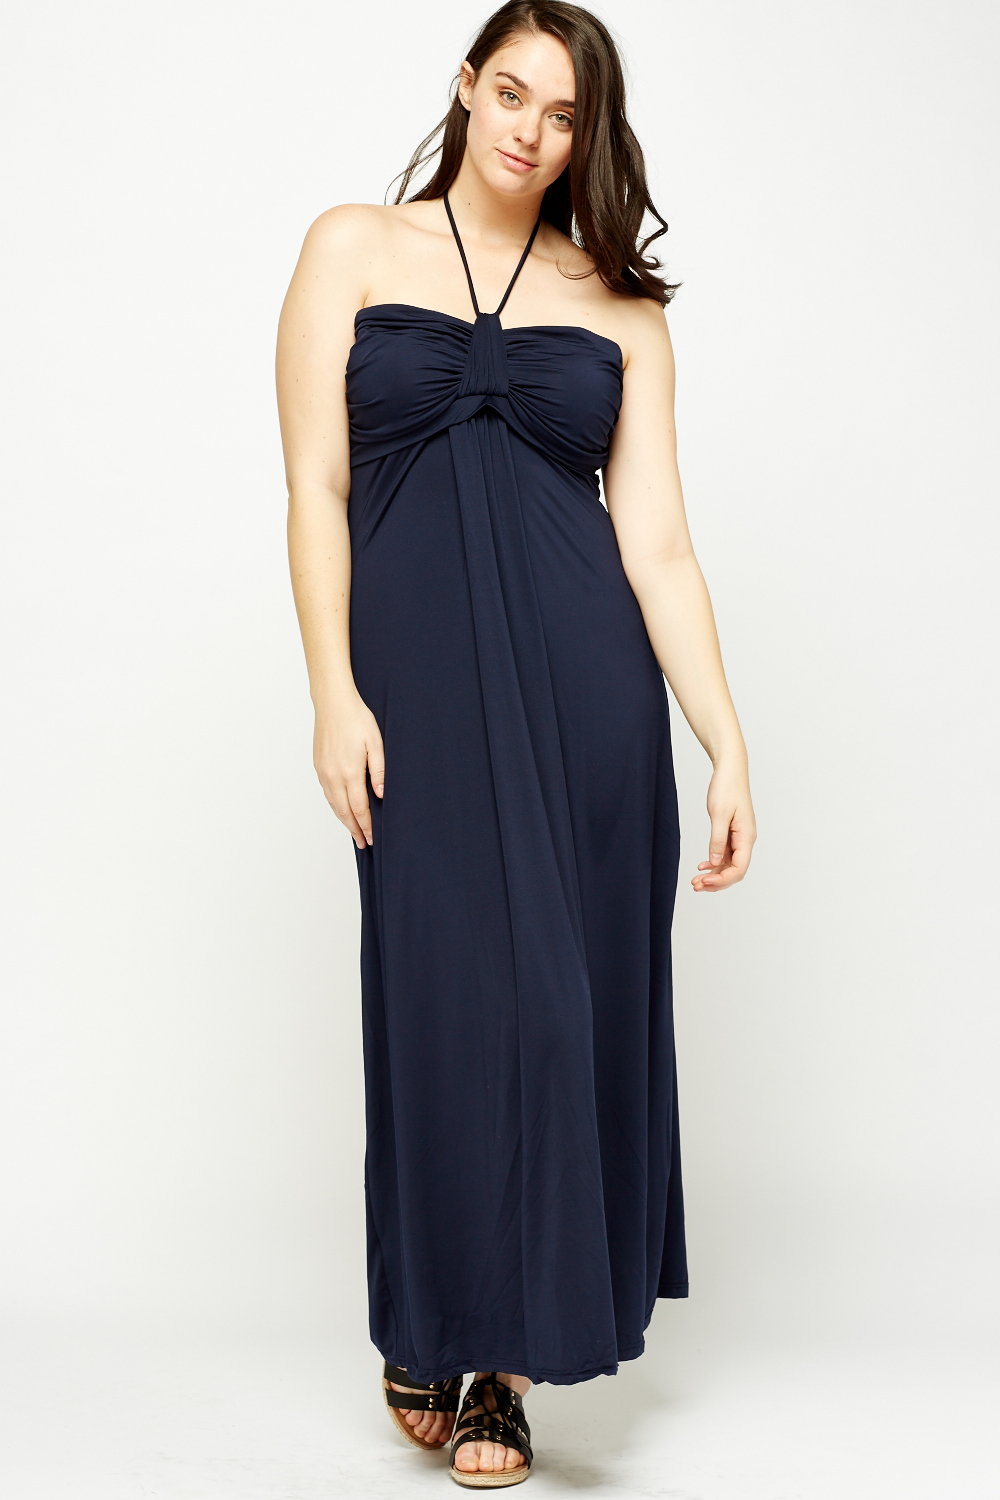 500e032be459 Off Shoulder Coffee Maxi Dress - Just £5